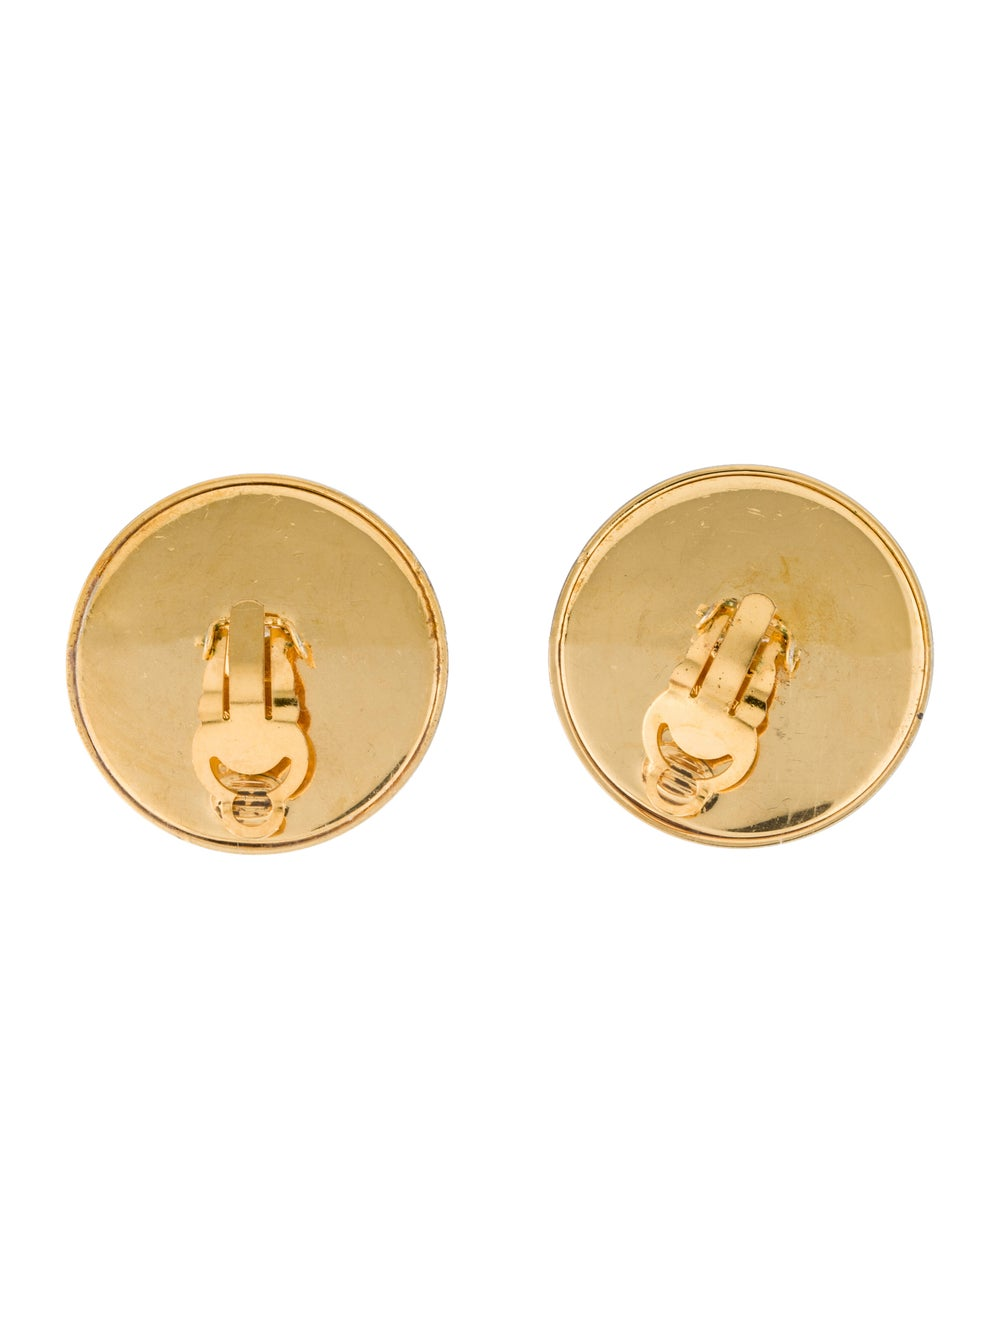 Chanel Vintage CC Clip-On Earrings Gold - image 4